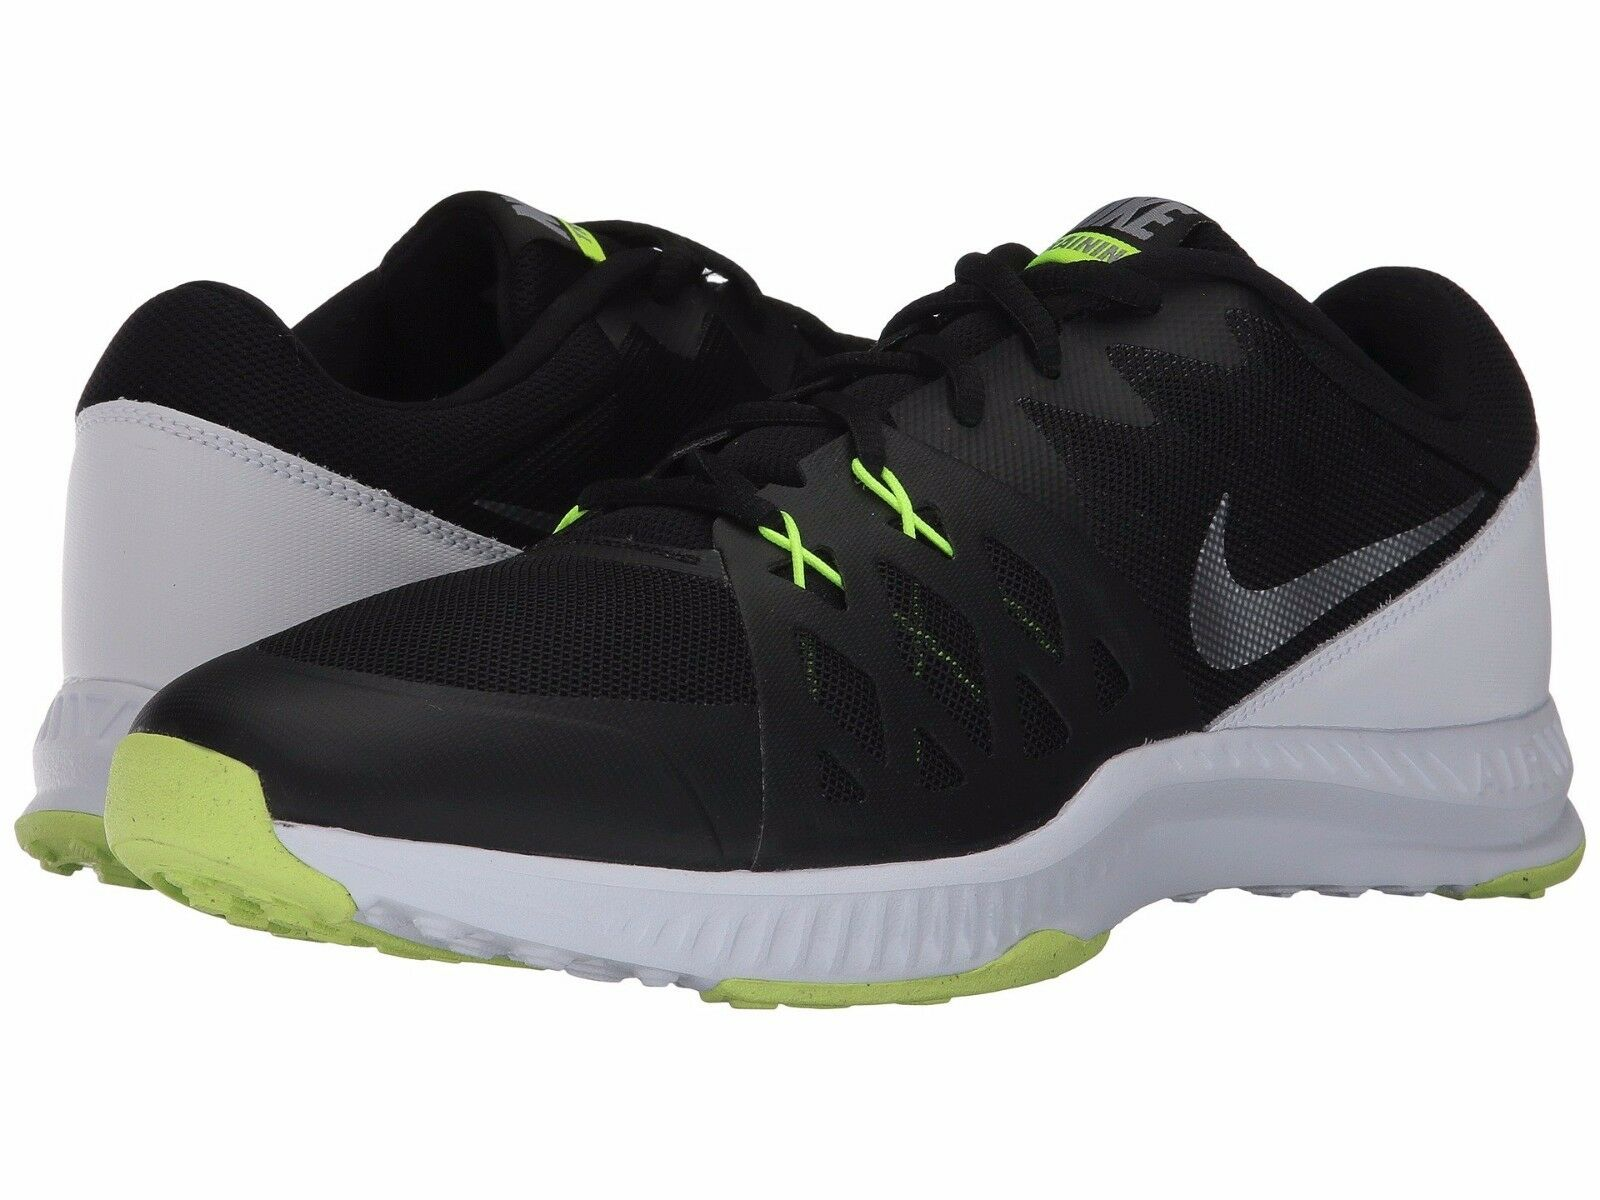 Men's Nike Air Epic Speed TR II Training Shoes, 852456 008 Sizes 10-15 Black/Gre